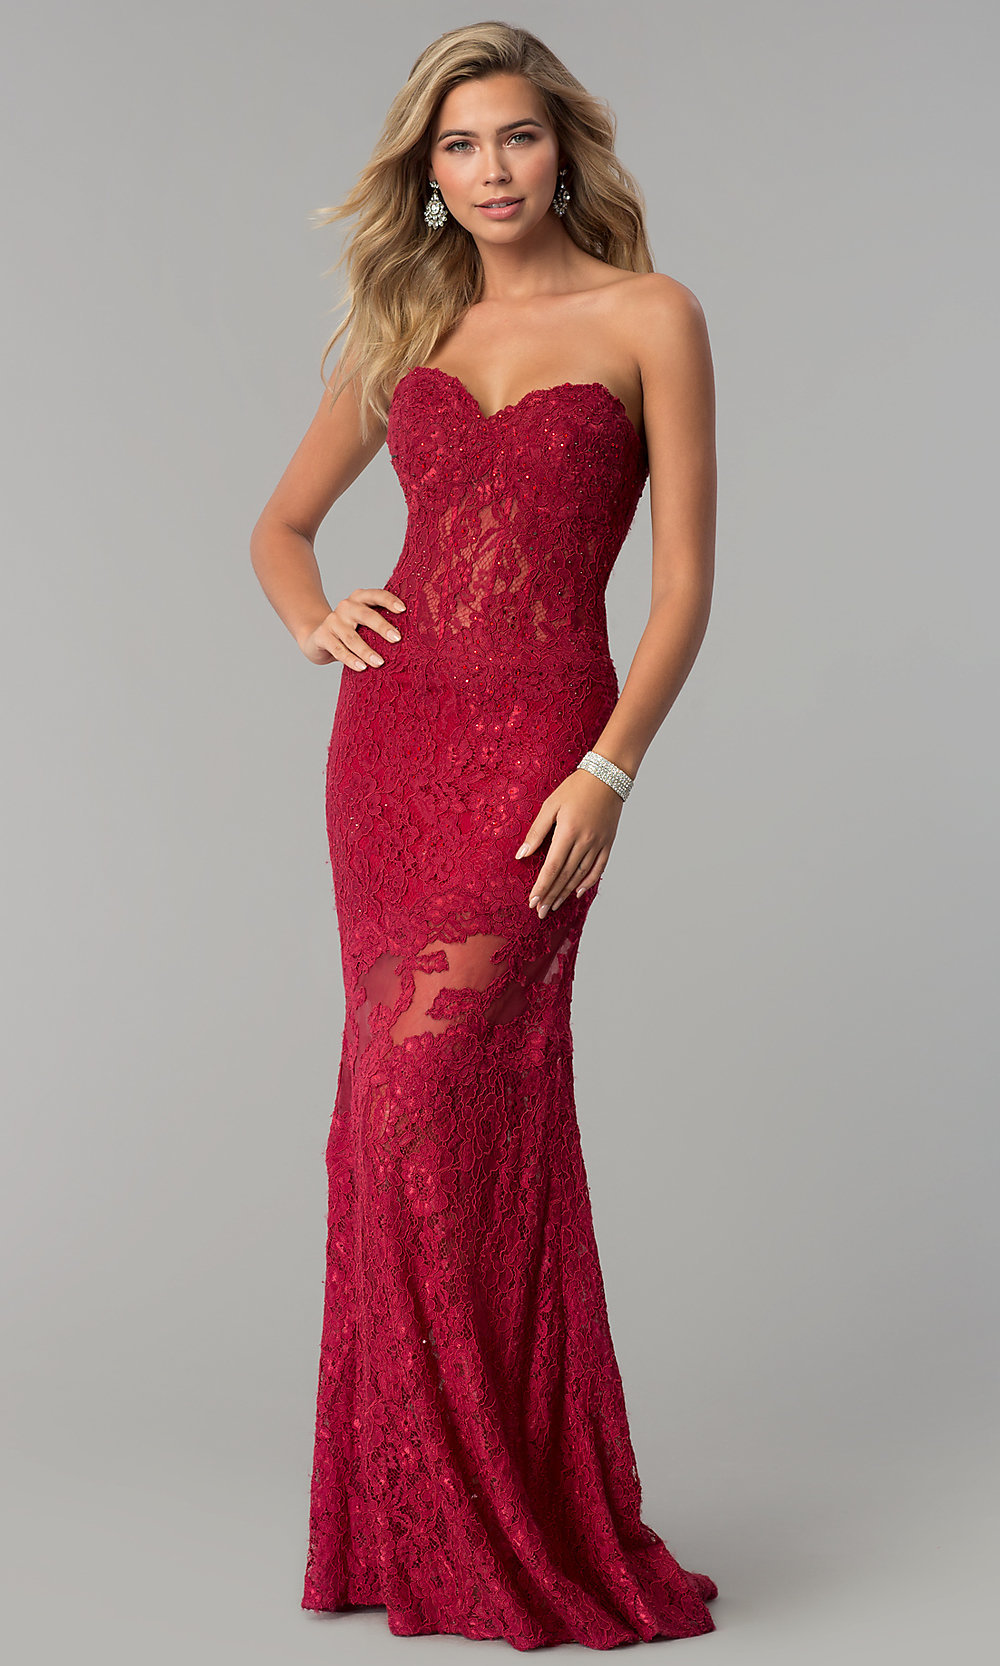 Lace Prom Dress With Strapless Sweetheart Neckline